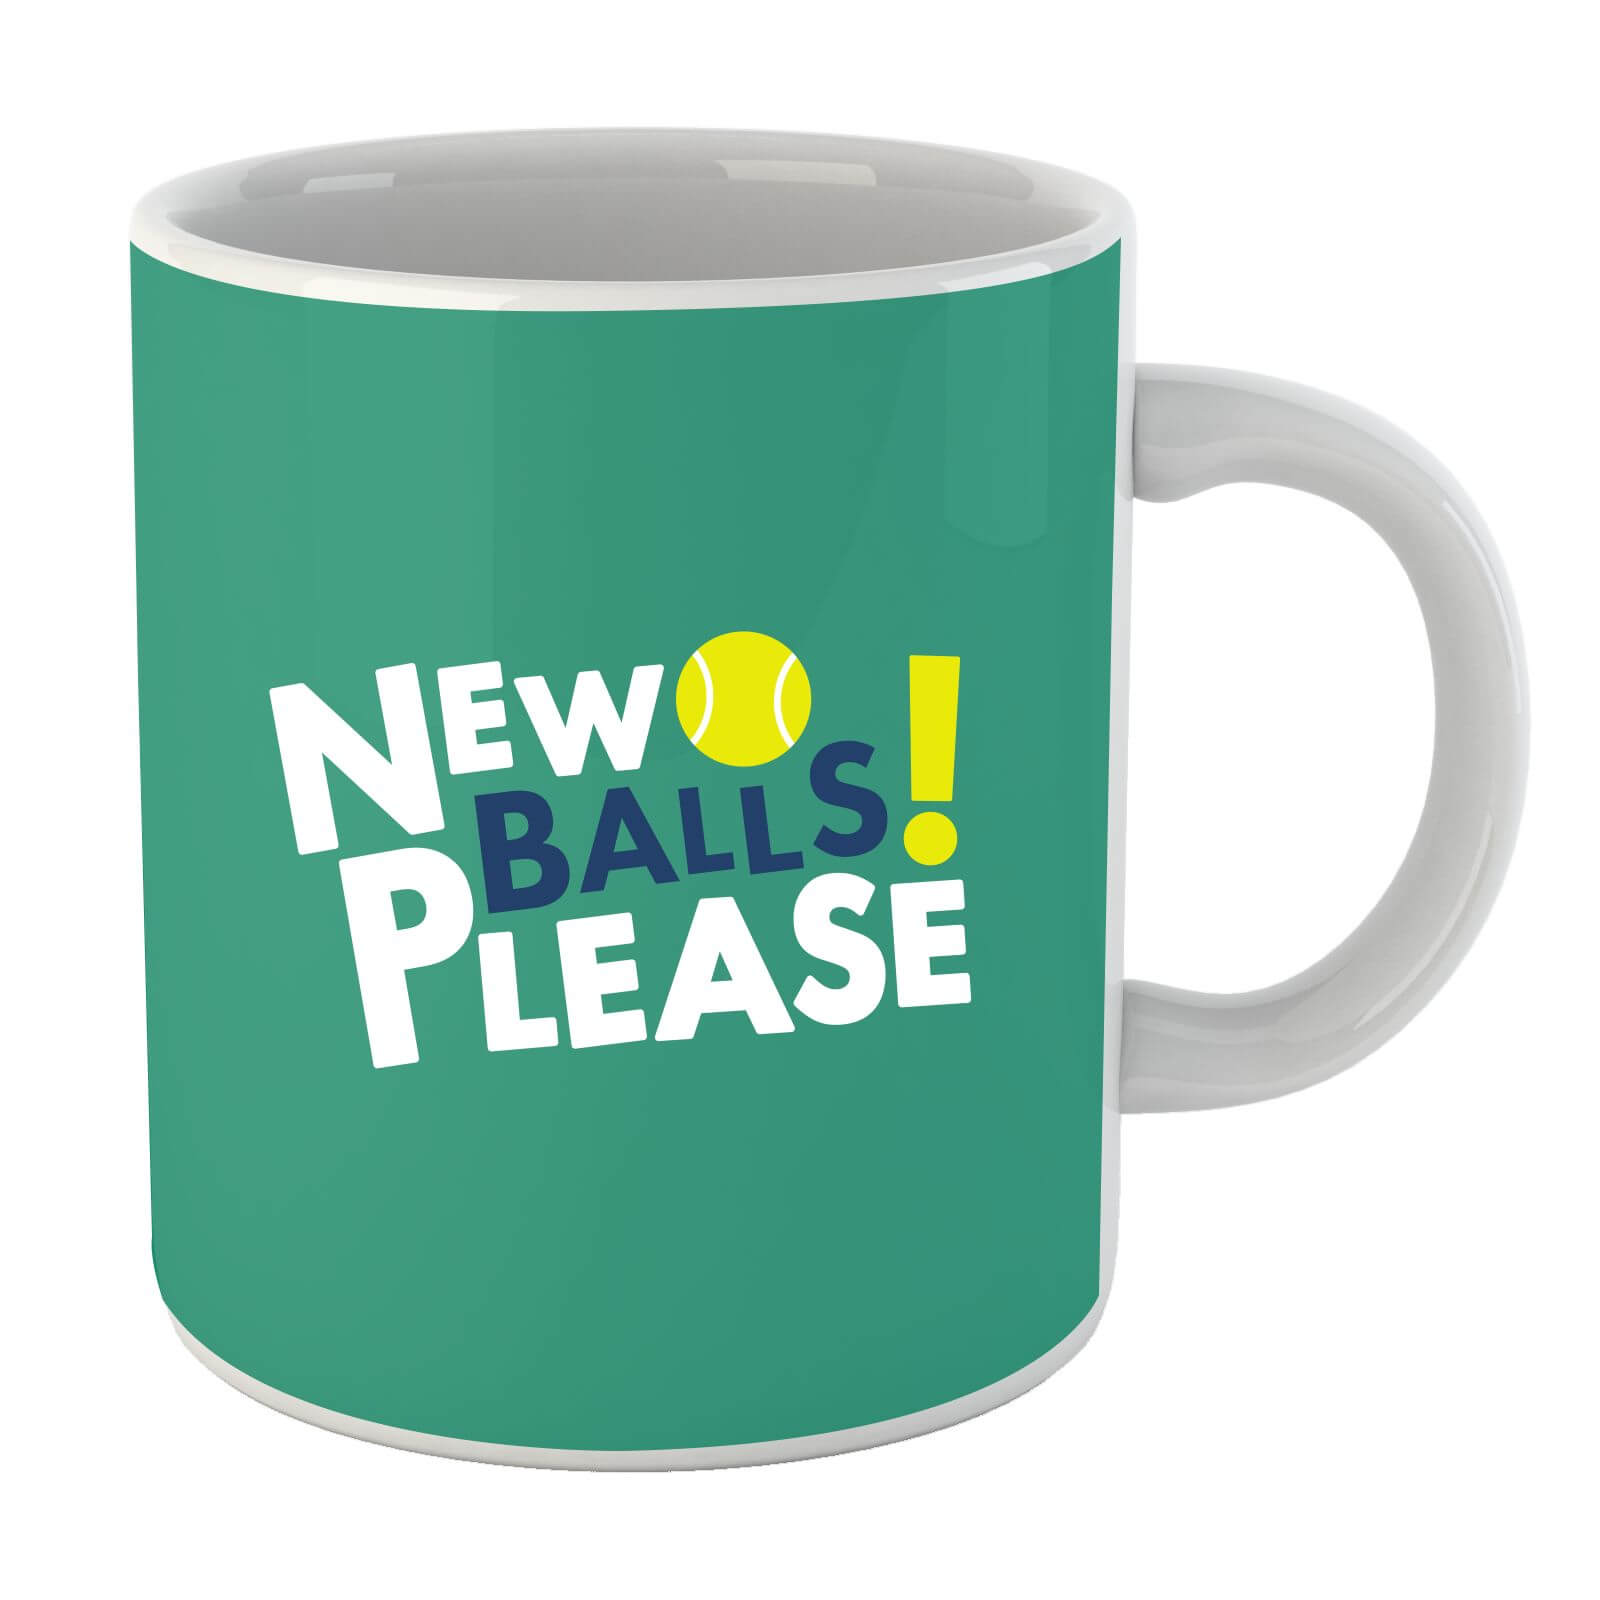 New Balls Please Mug